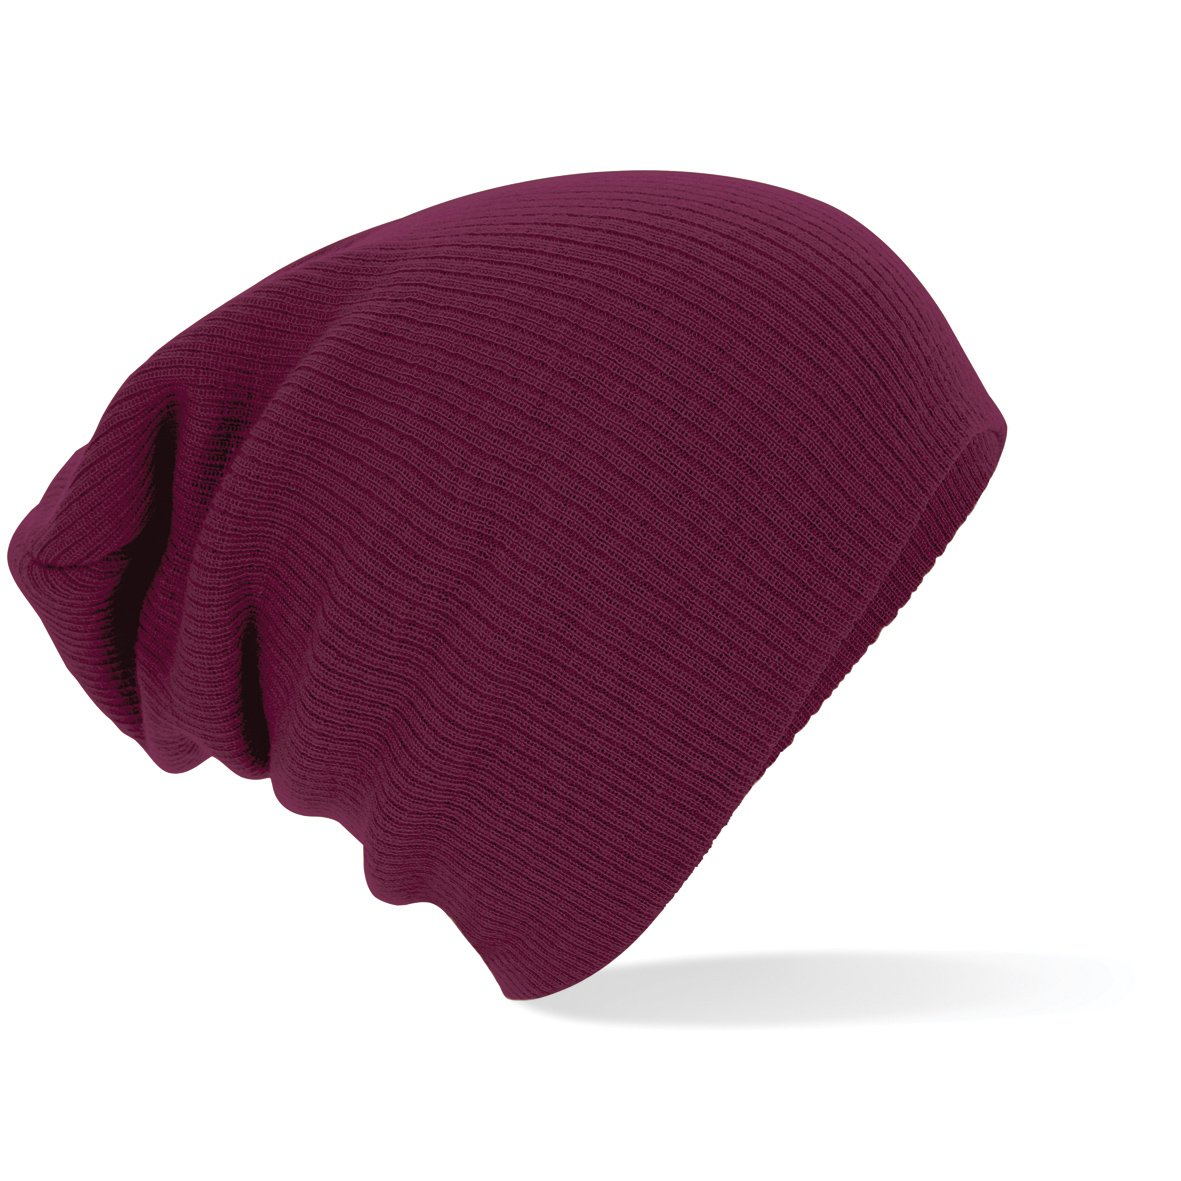 Beechfield Knitted Colours Slouch Beanie Hat